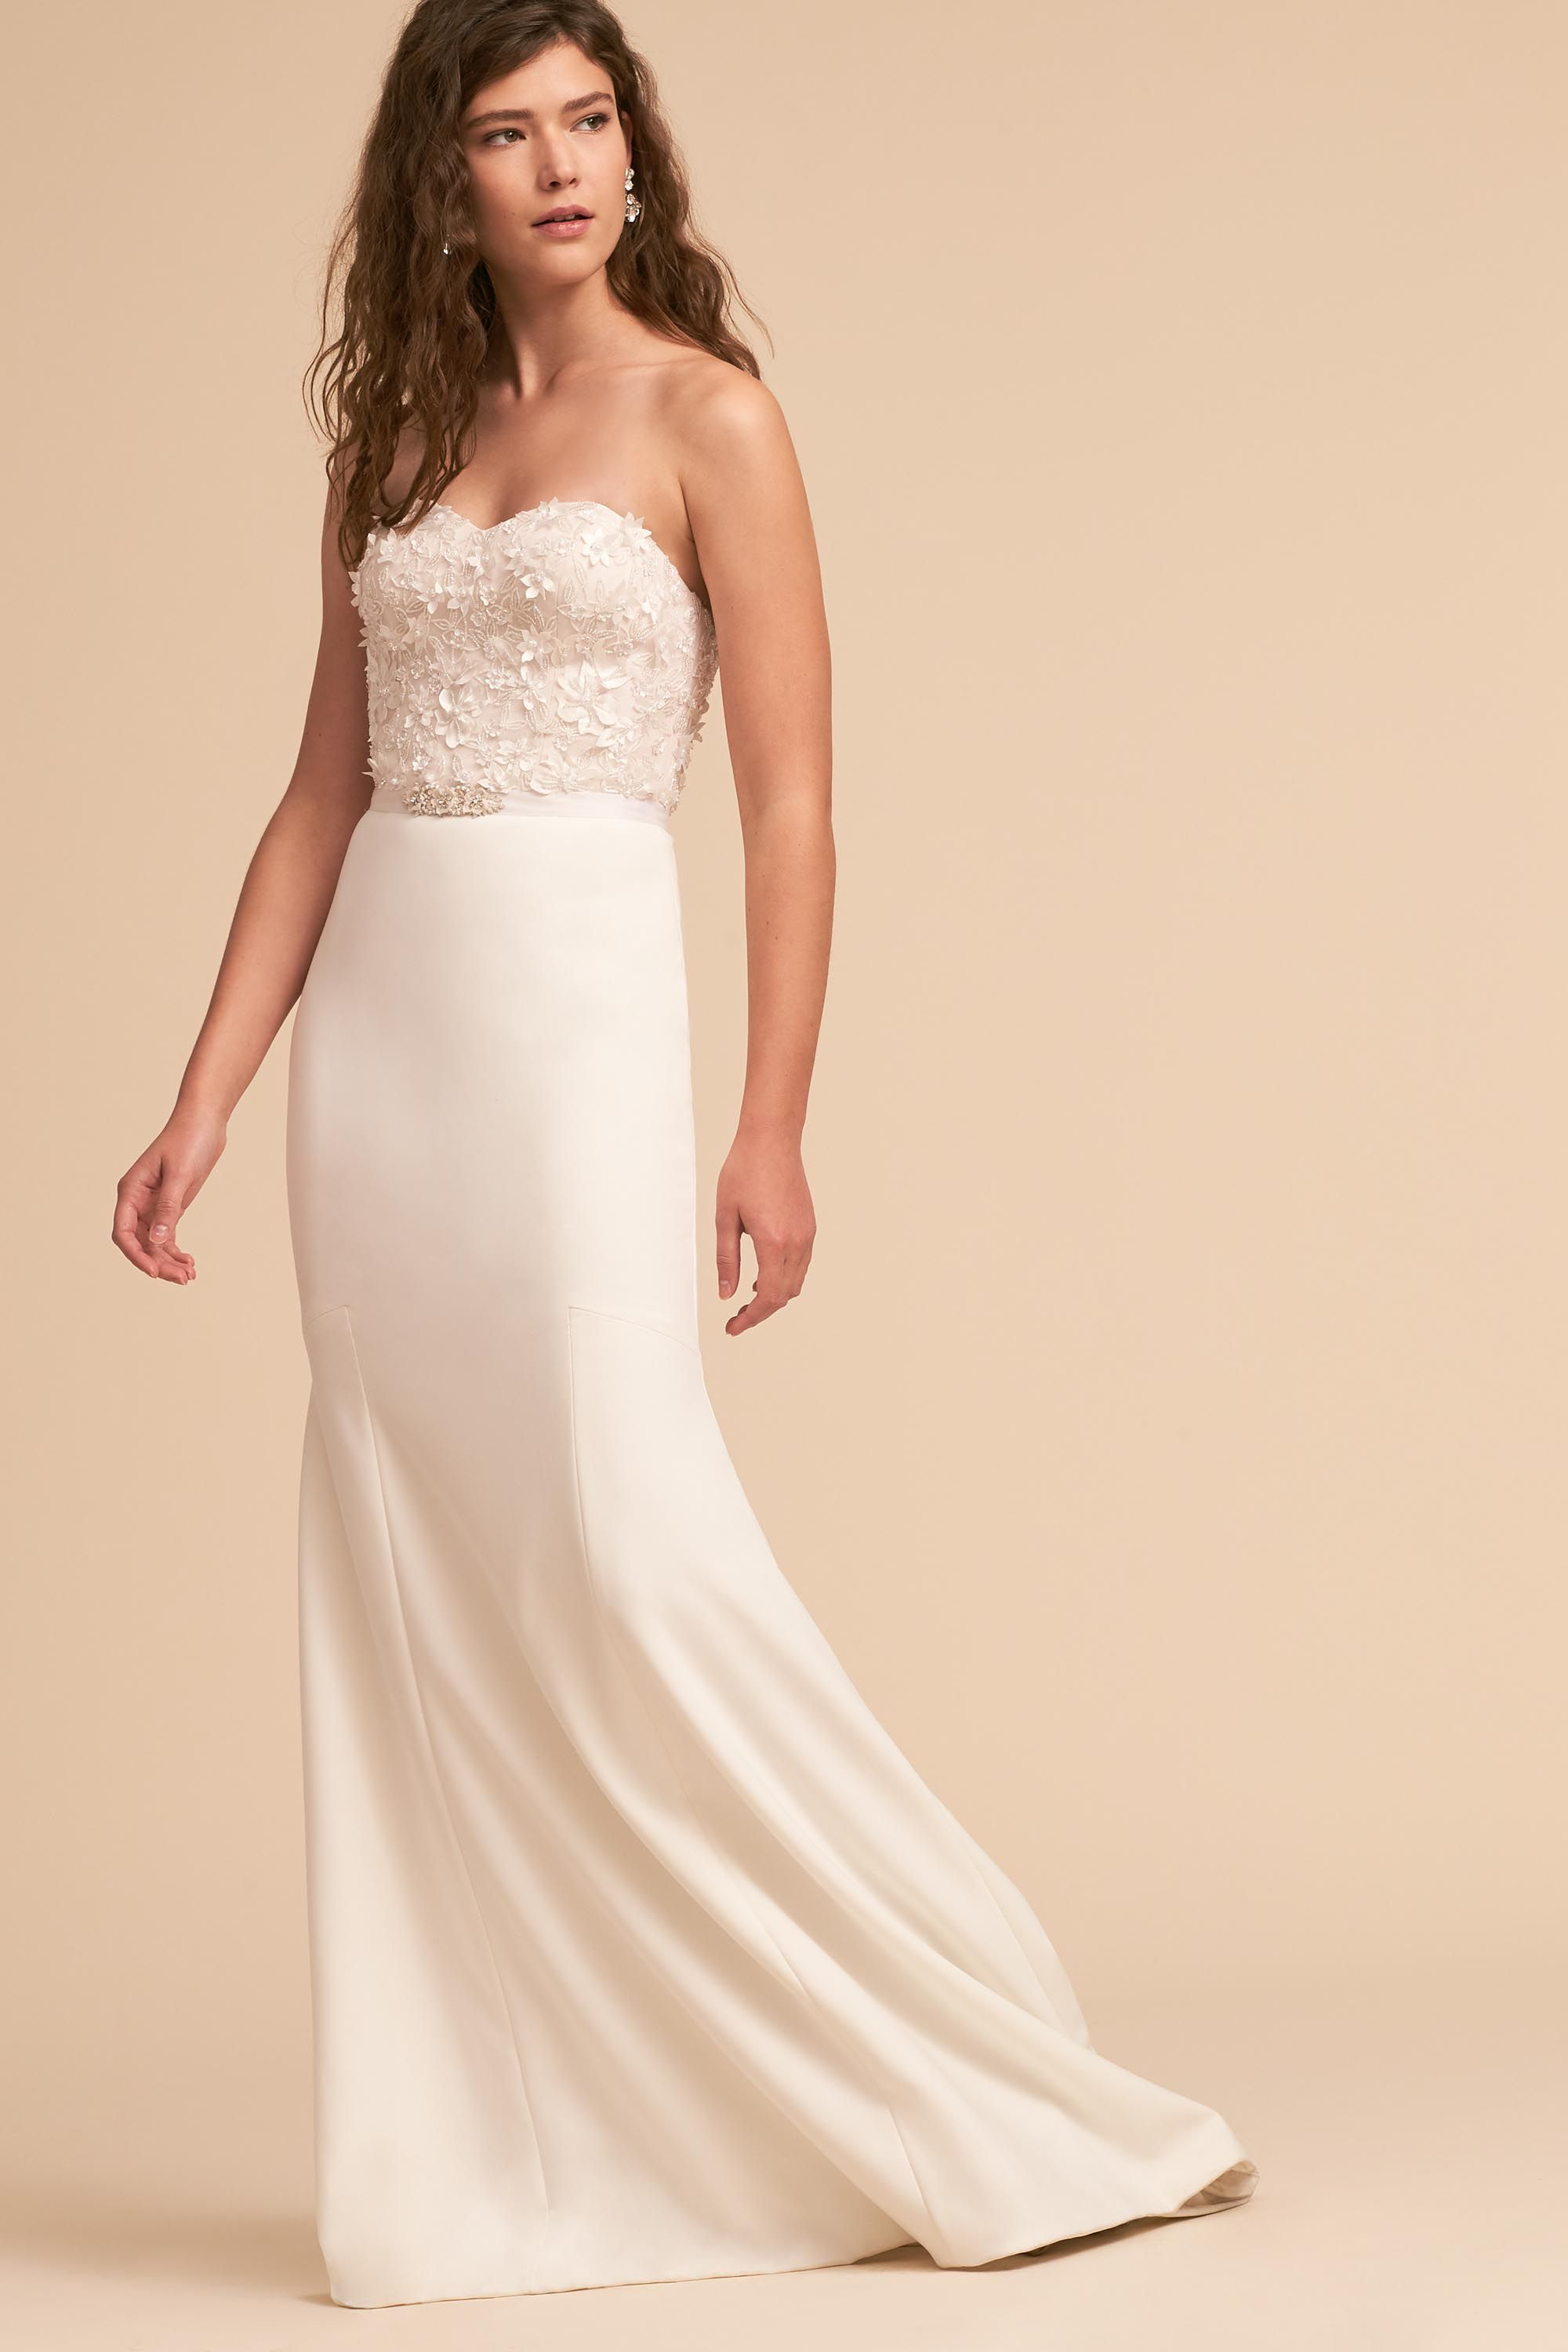 Chicago wedding dress shops  Amanda Gown from BHLDN  I do in   Pinterest  Wedding